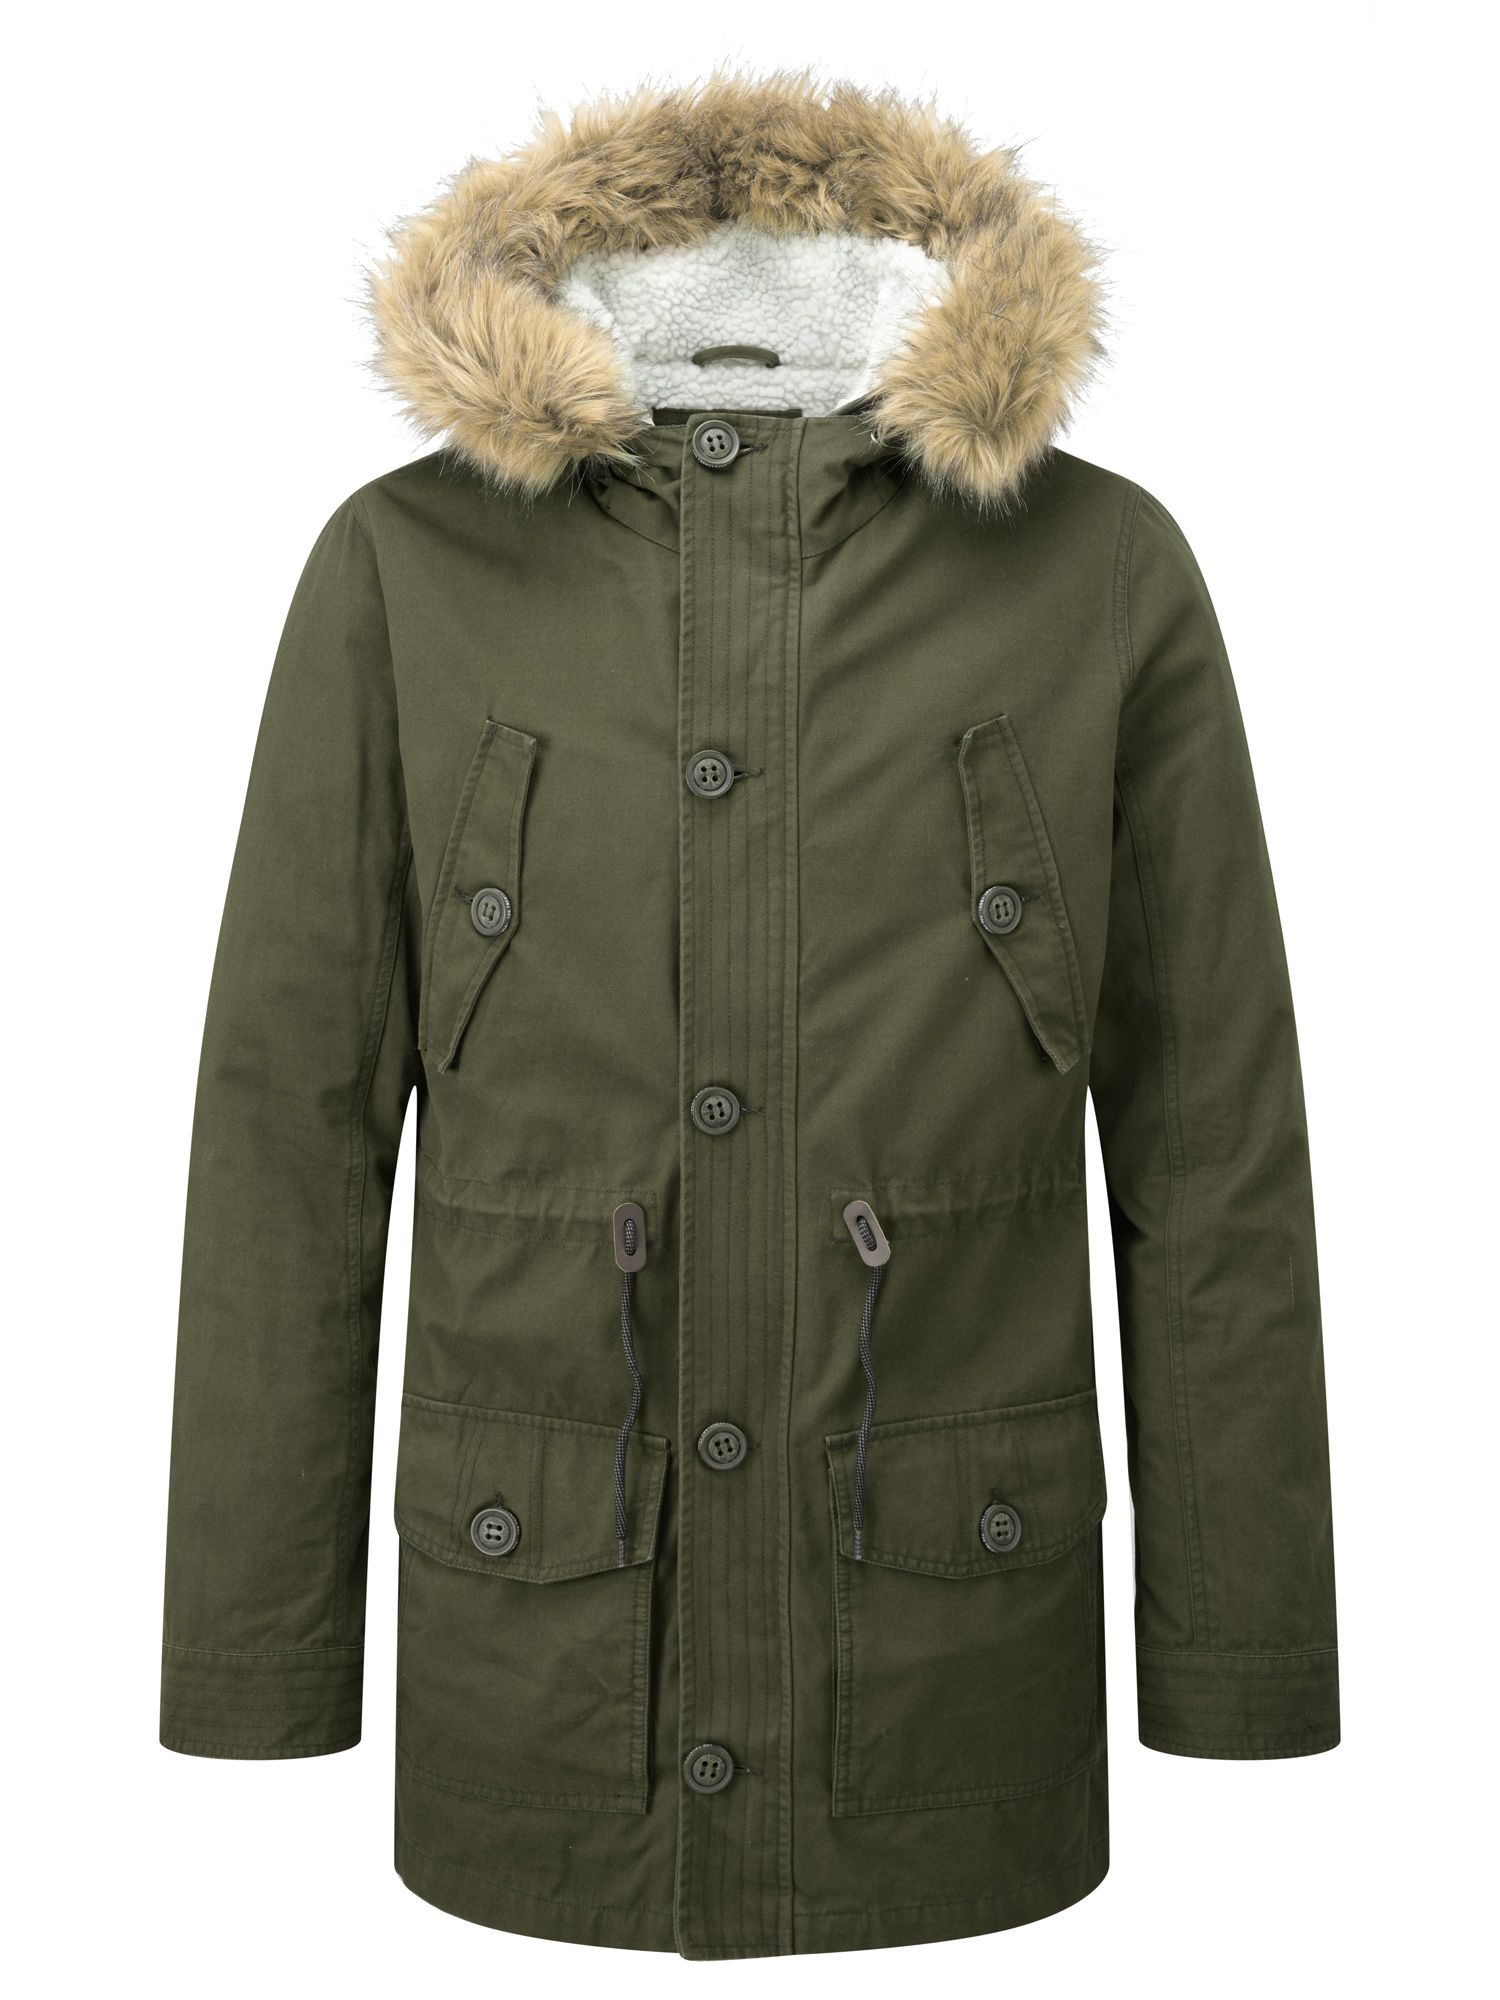 Mens Tog 24 Harrier mens parka jacket Green